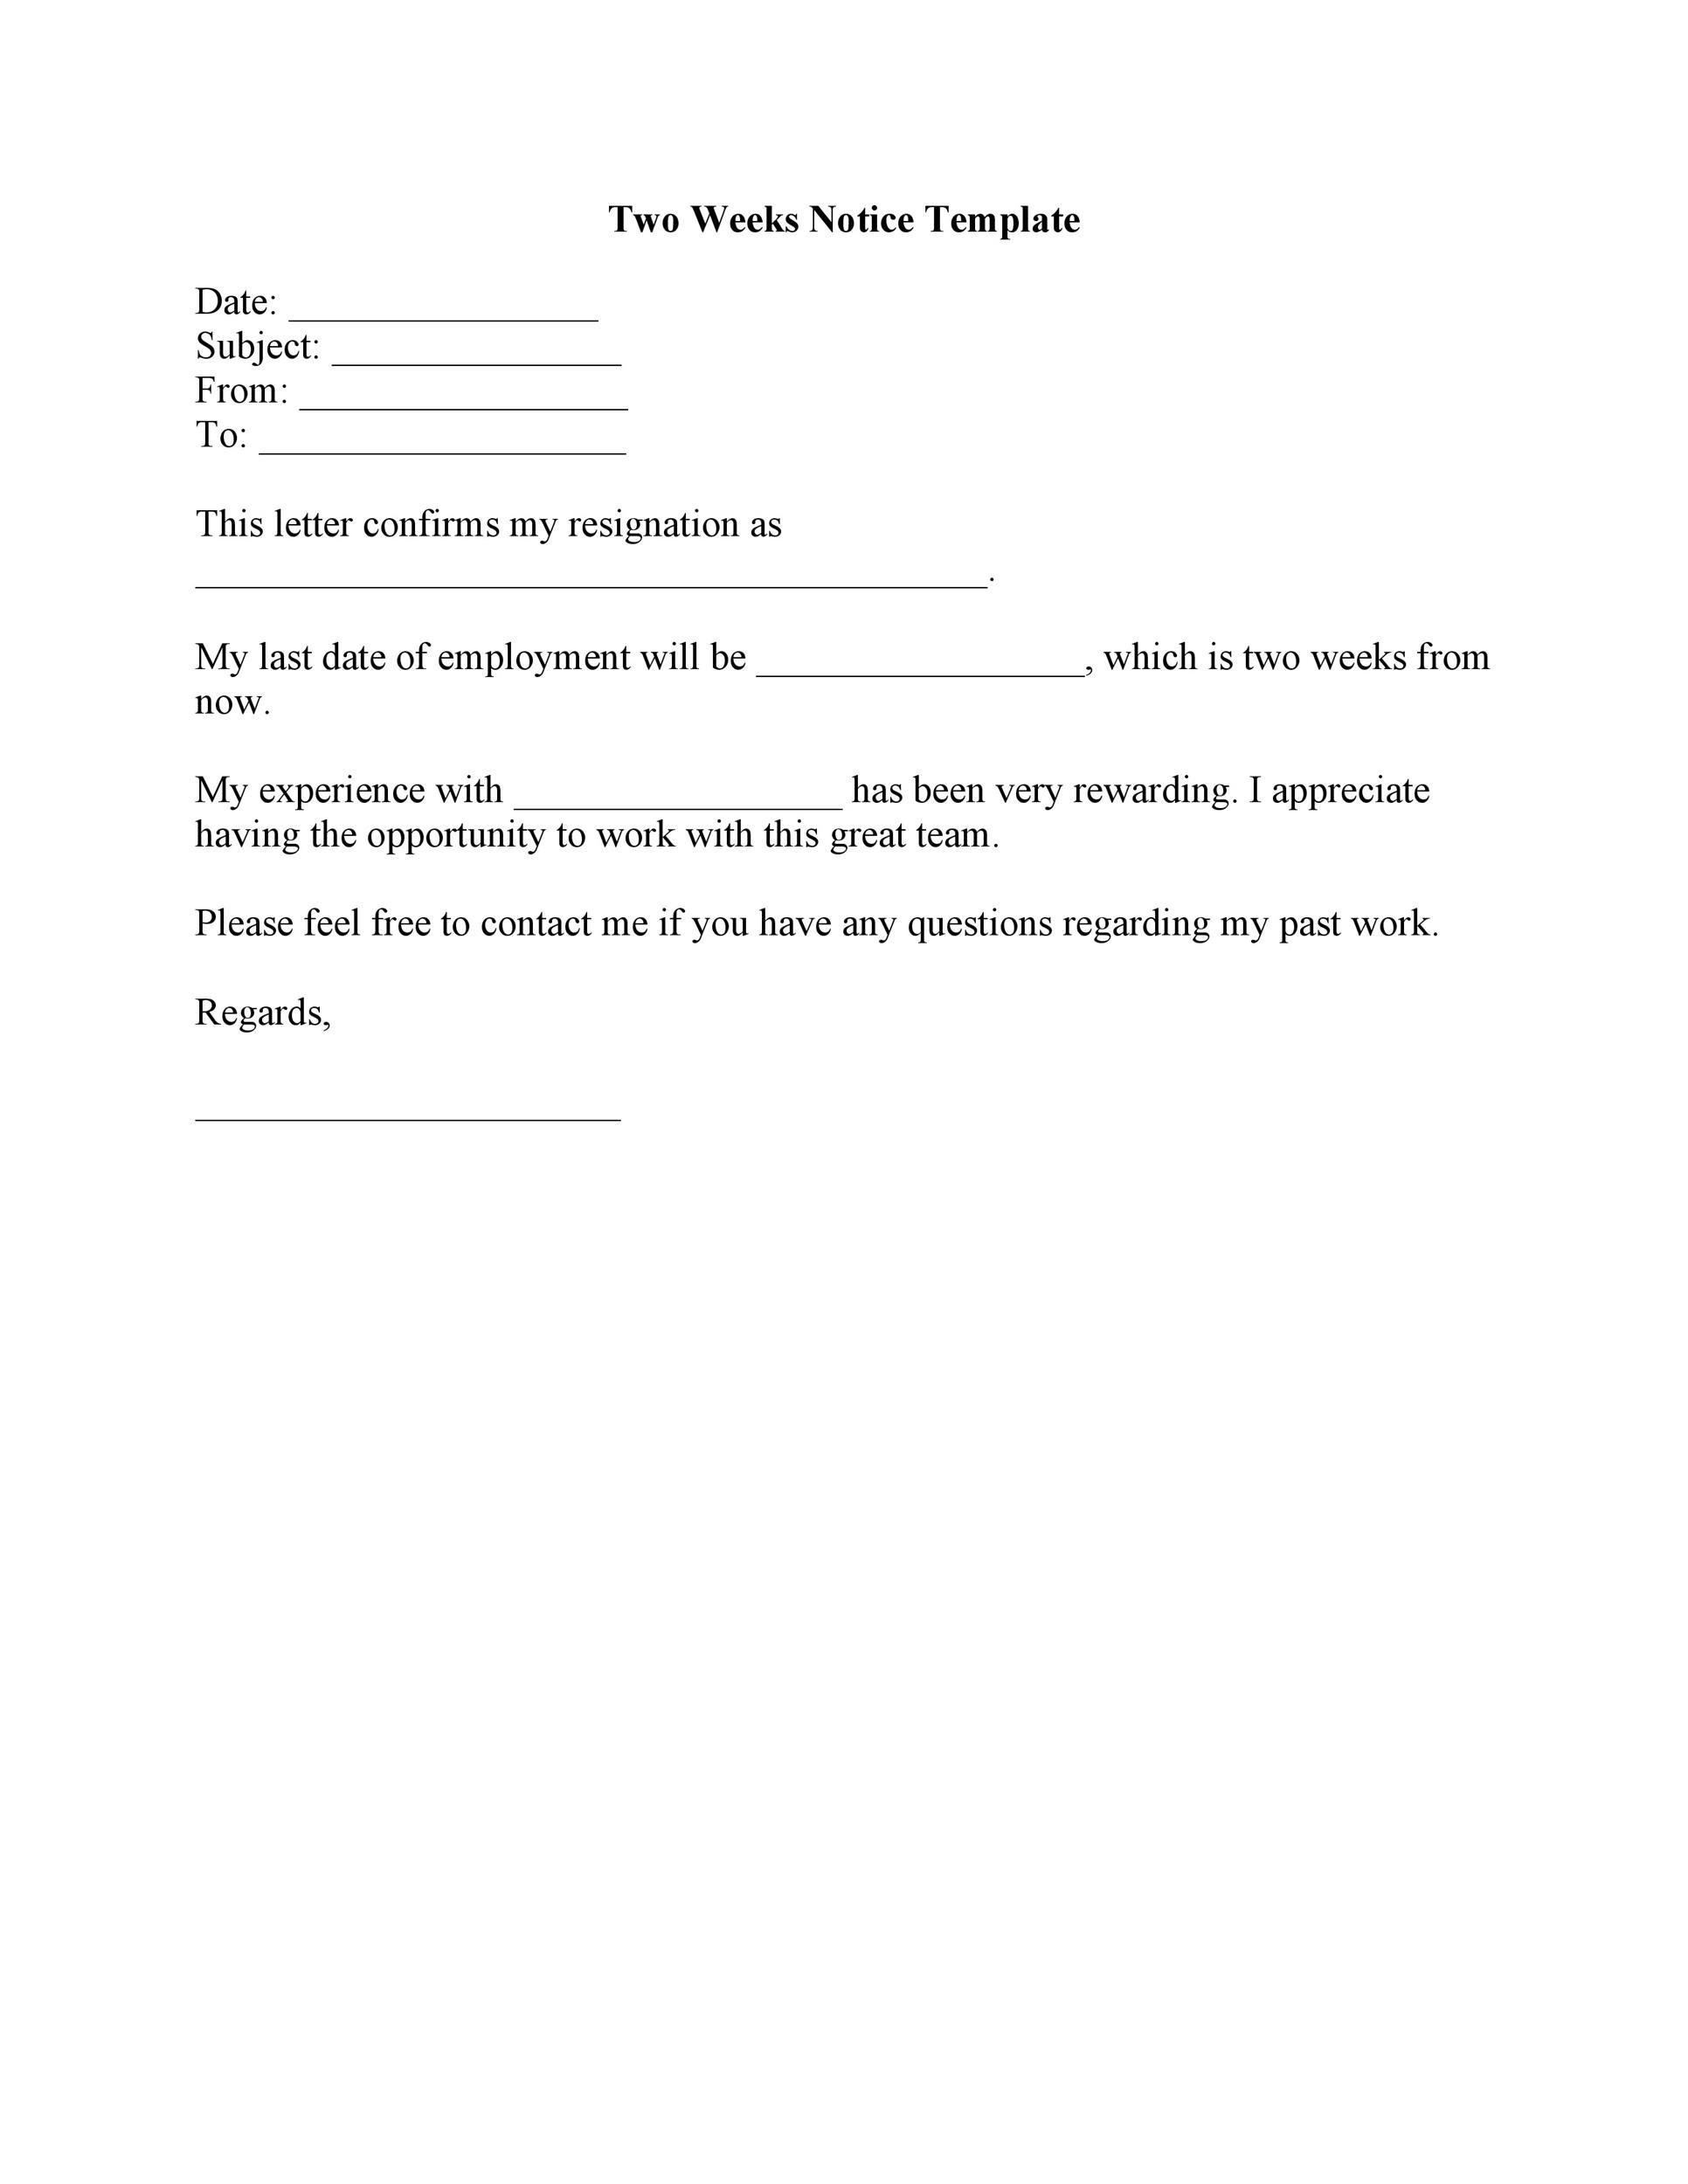 Resignation letter: Sample templates and guide